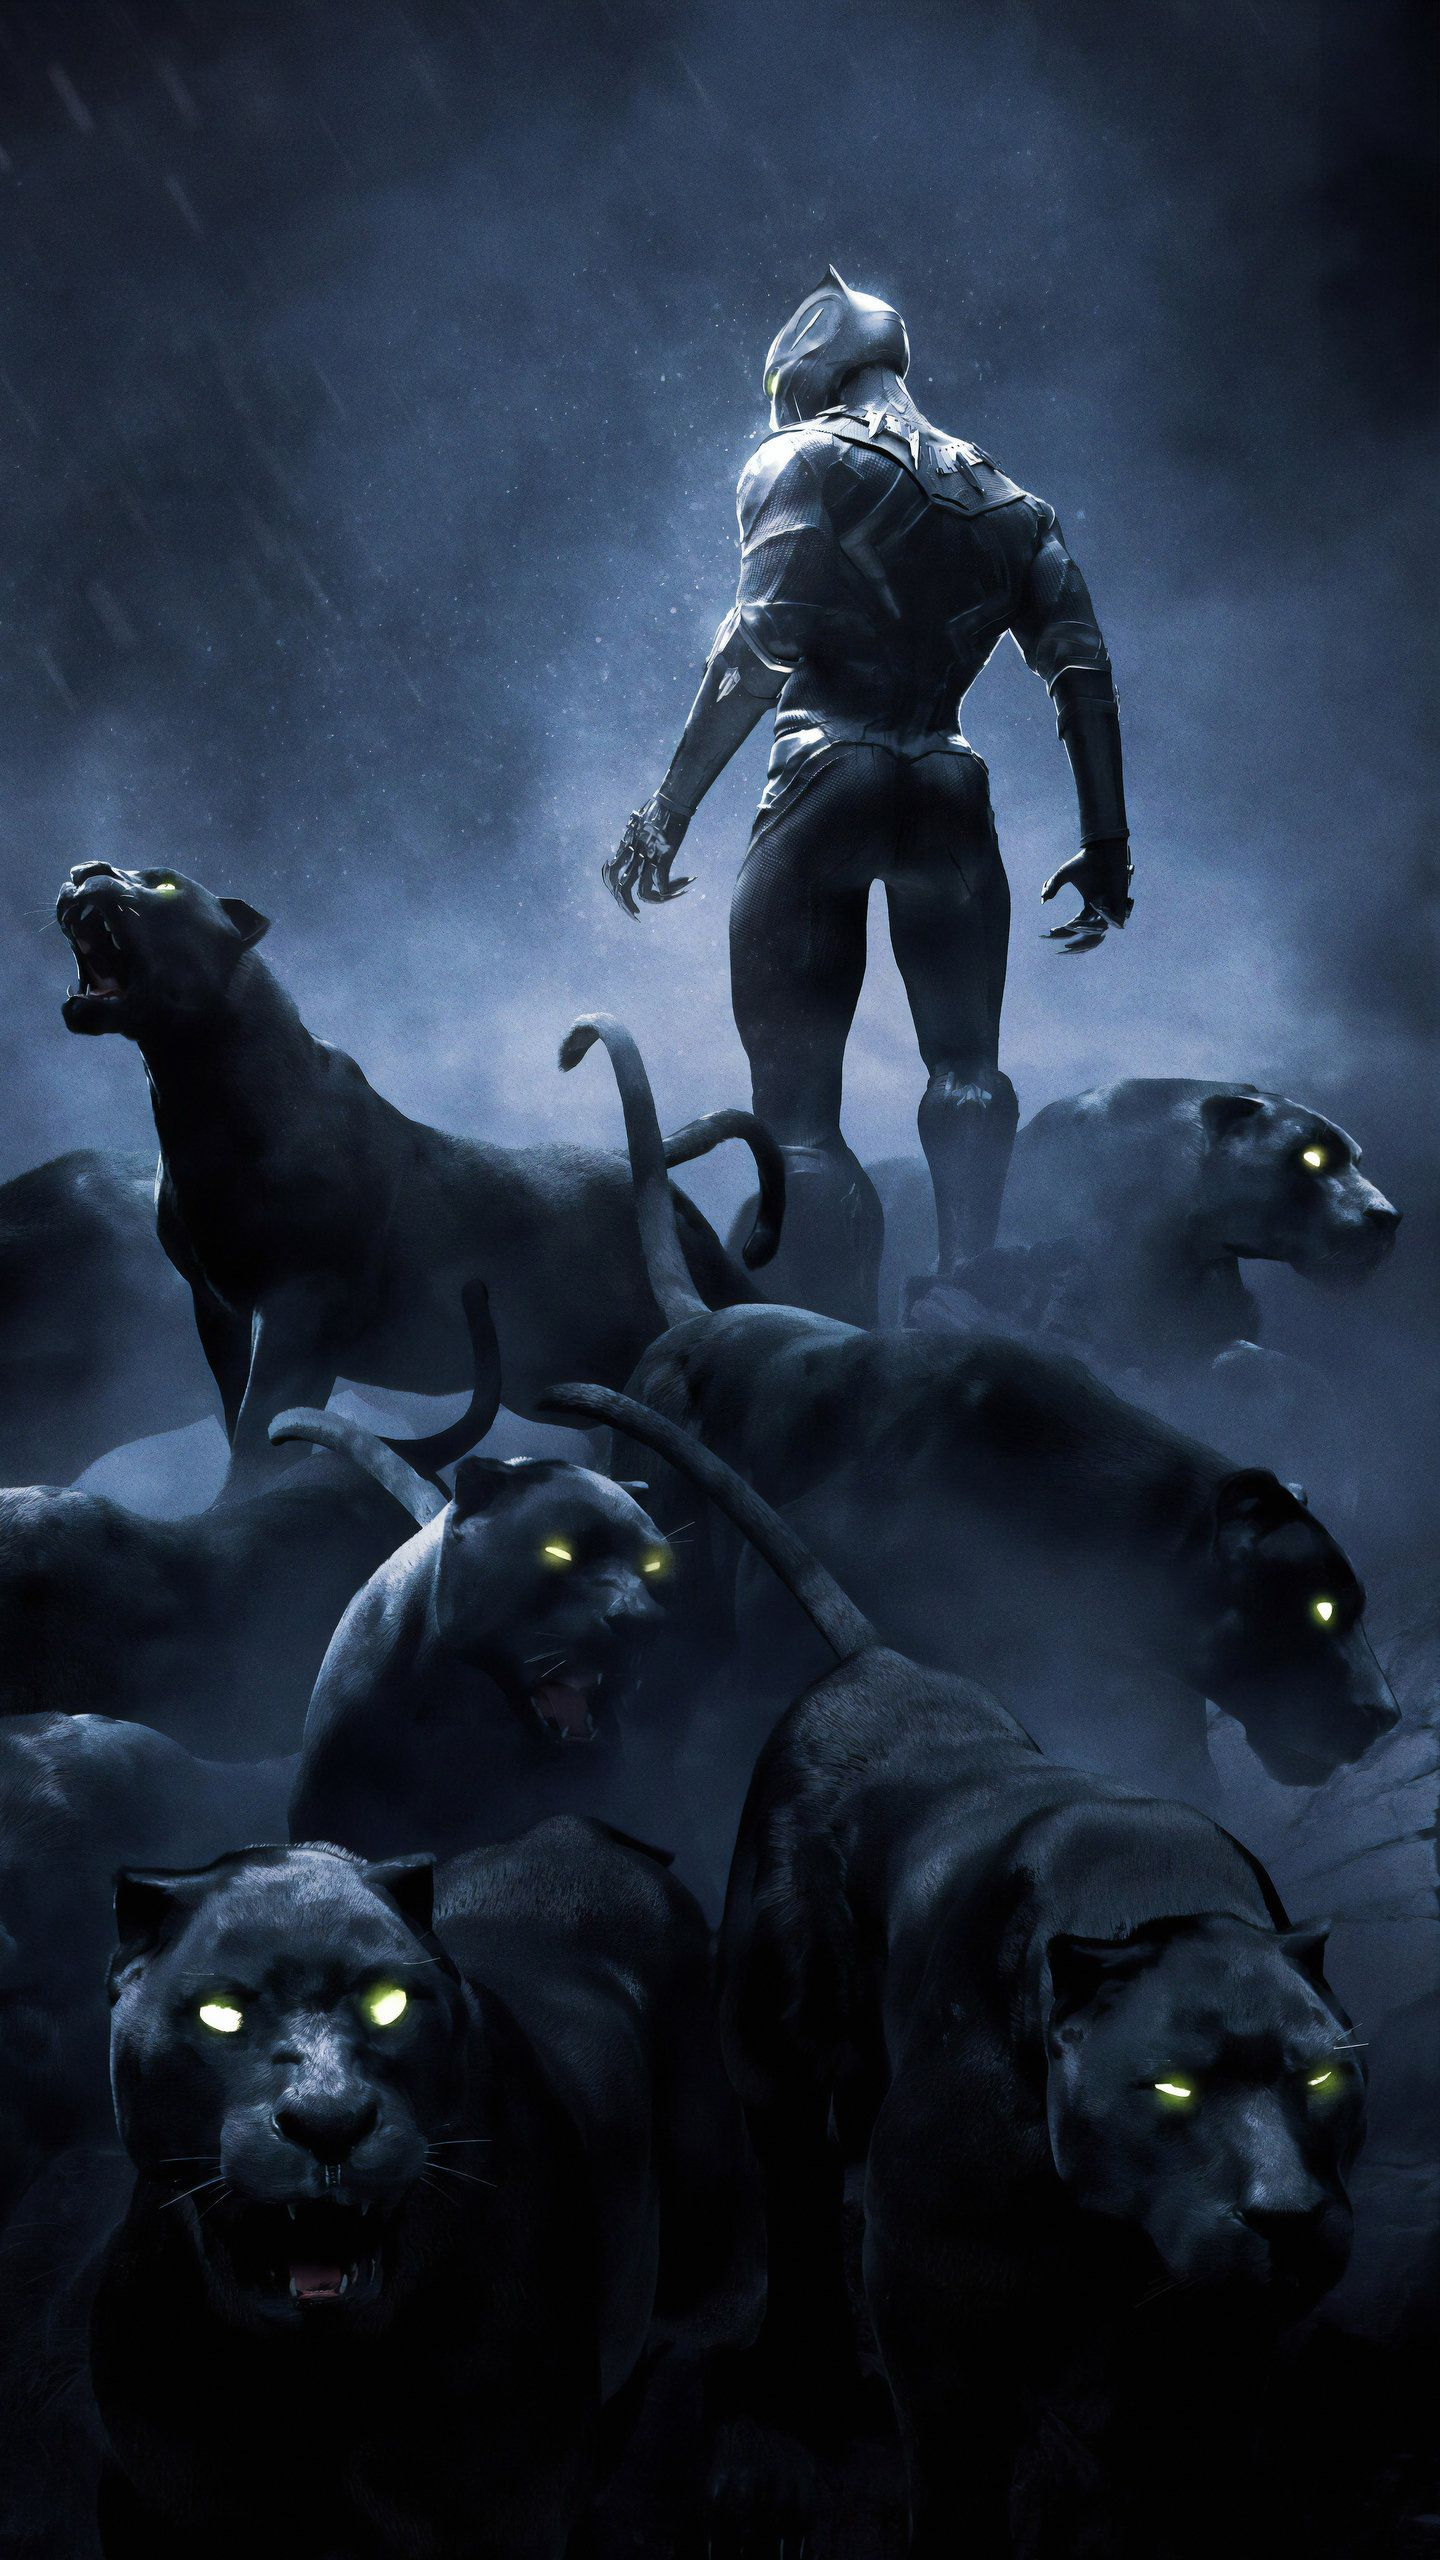 Black Panther Rise Up 4k Hd Superheroes Wallpapers Photos And Pictures Marvel Comics Wallpaper Marvel Superhero Posters Black Panther Marvel